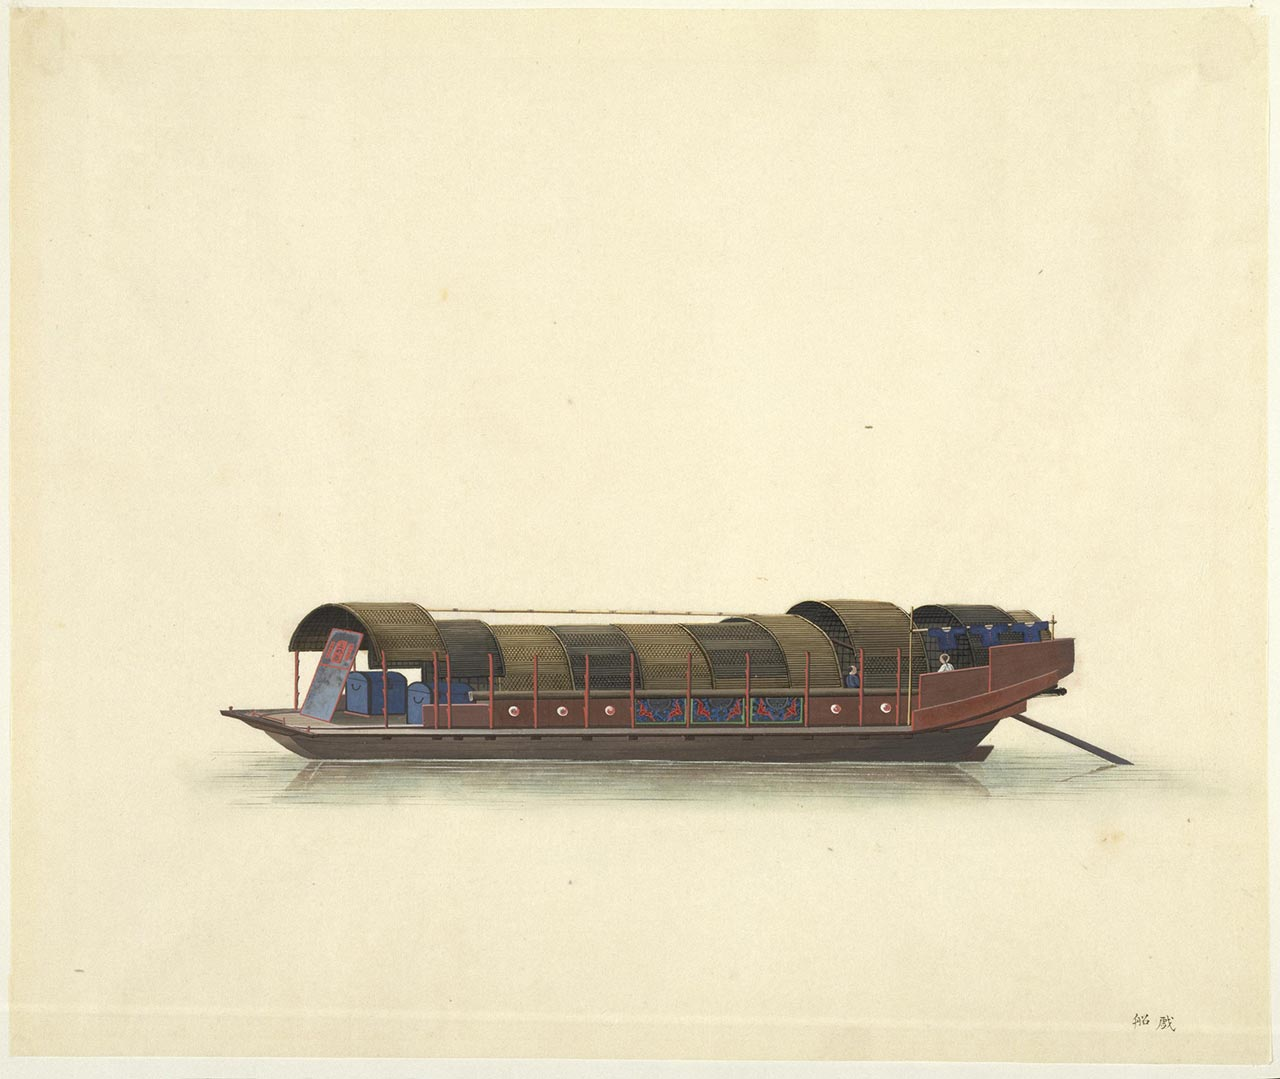 A theatrical troupe's boat, in which players travelled by river to perform in different towns and counties.